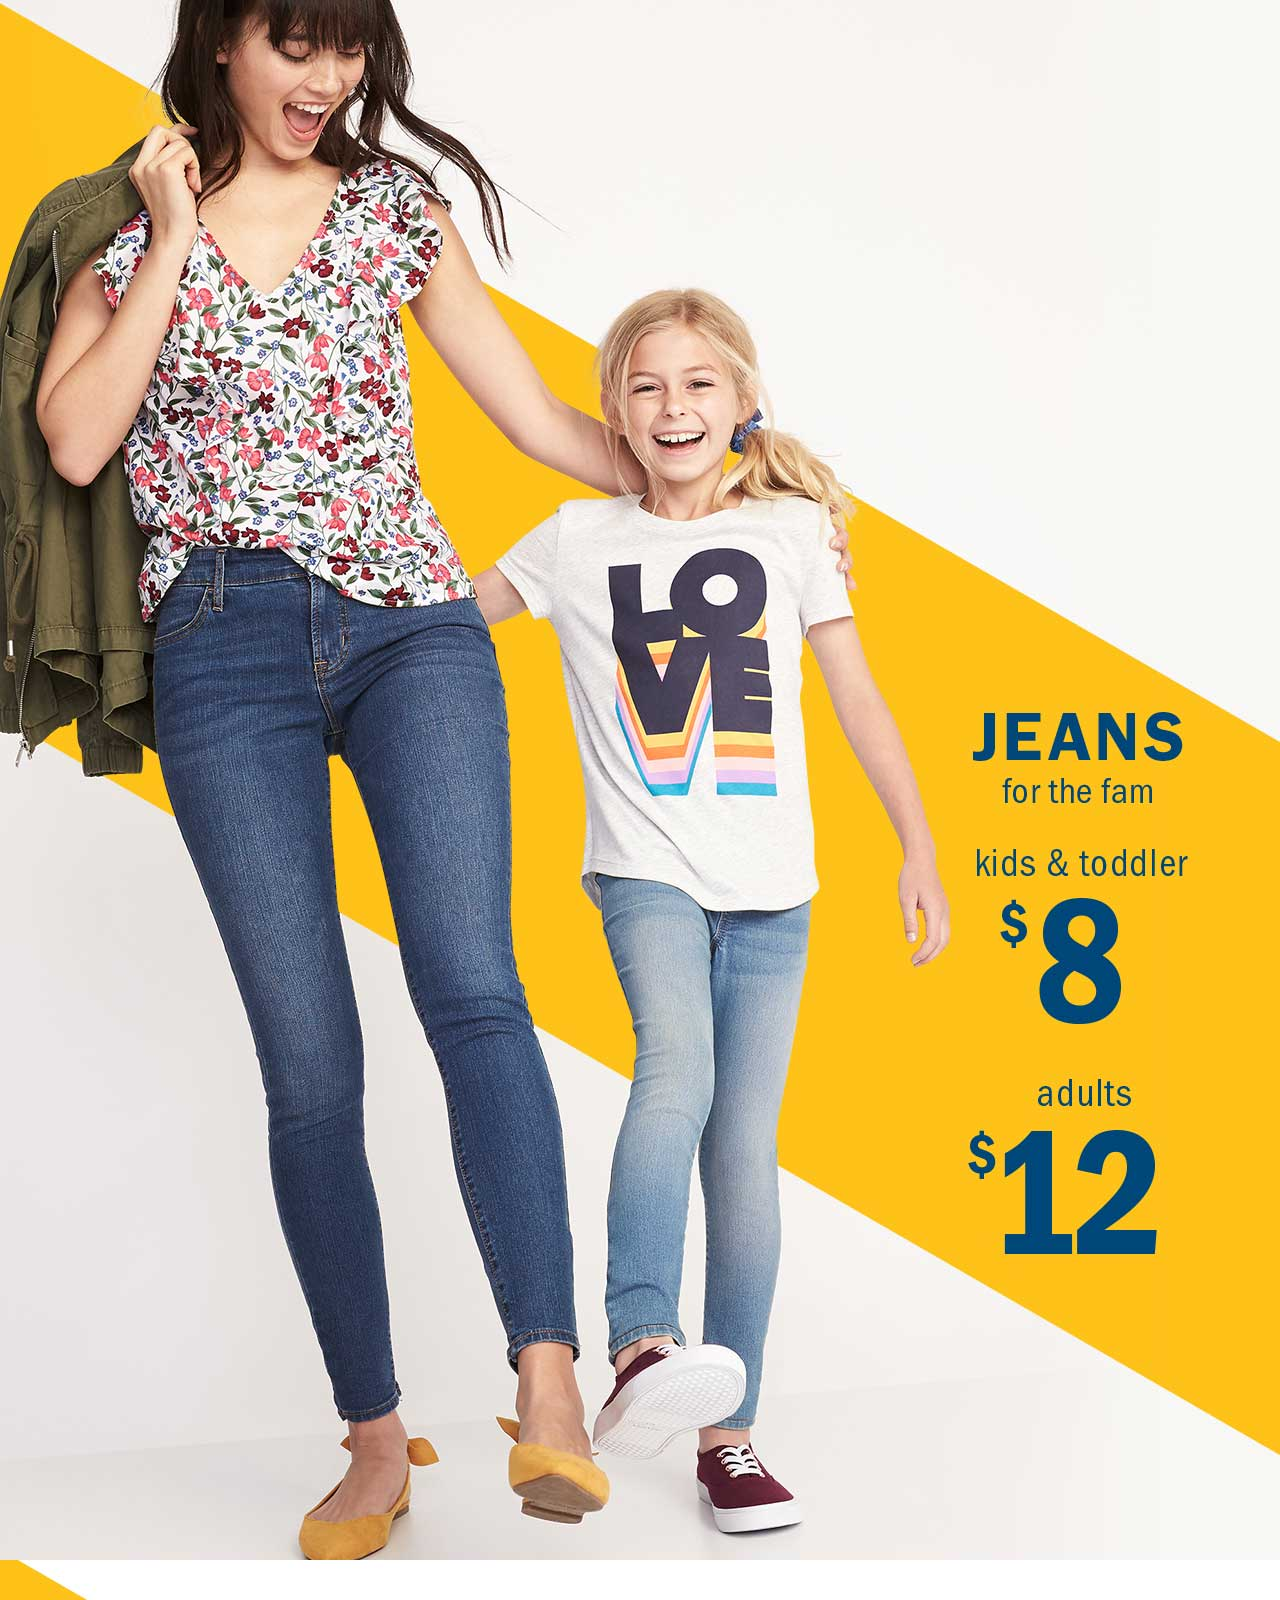 JEANS for the fam | kids & toddler $8 | adults $12